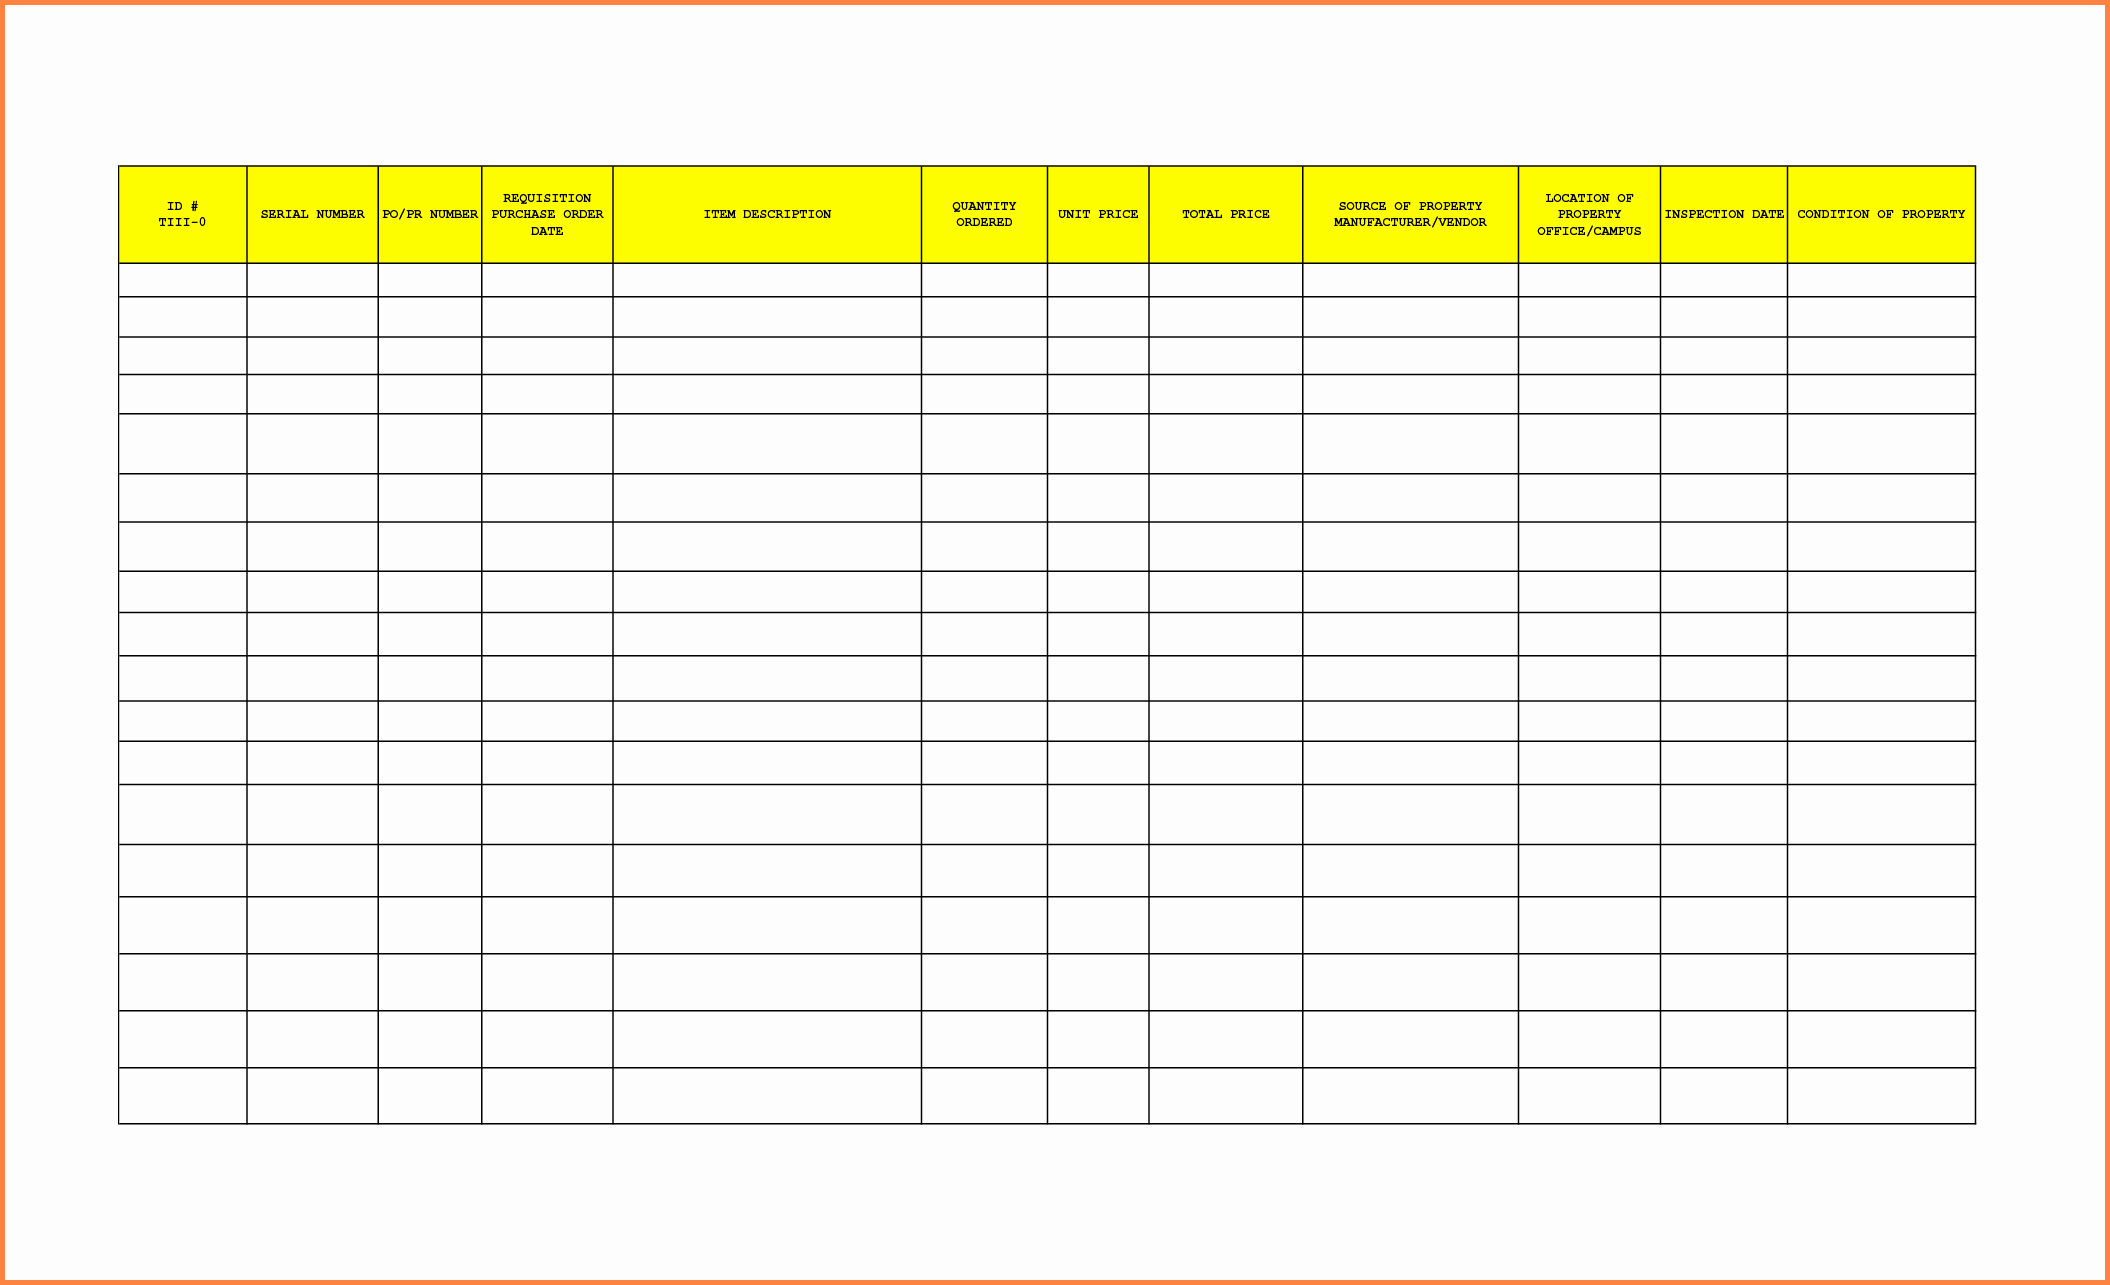 Office Supplies Inventory Template Fresh 8 Office Supplies Inventory Spreadsheet